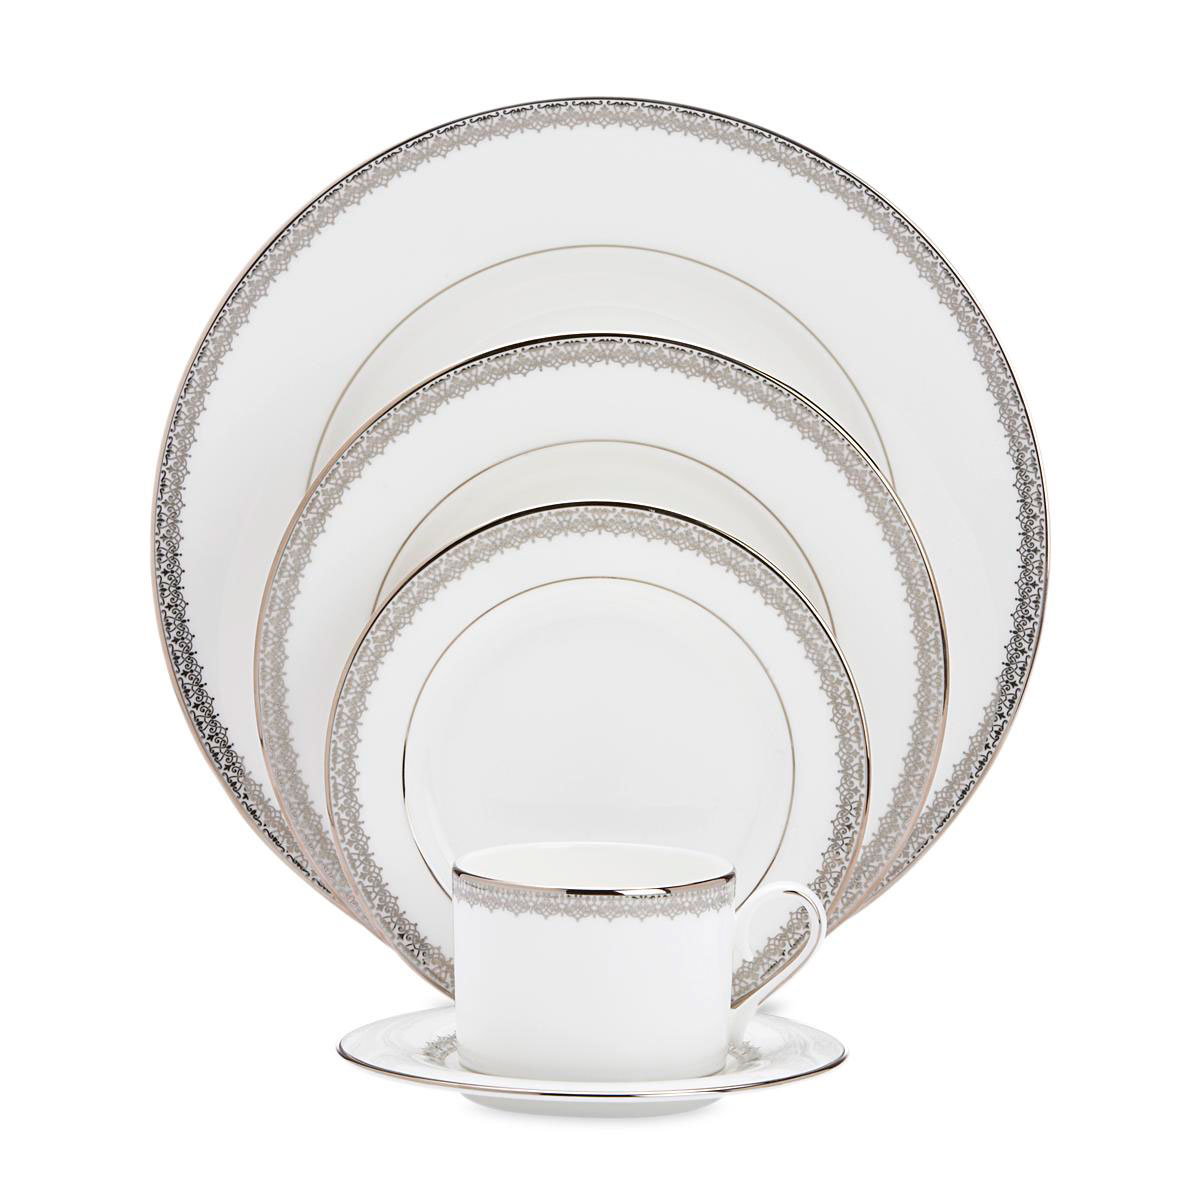 Lenox China Lace Couture, 5 Piece Place Setting